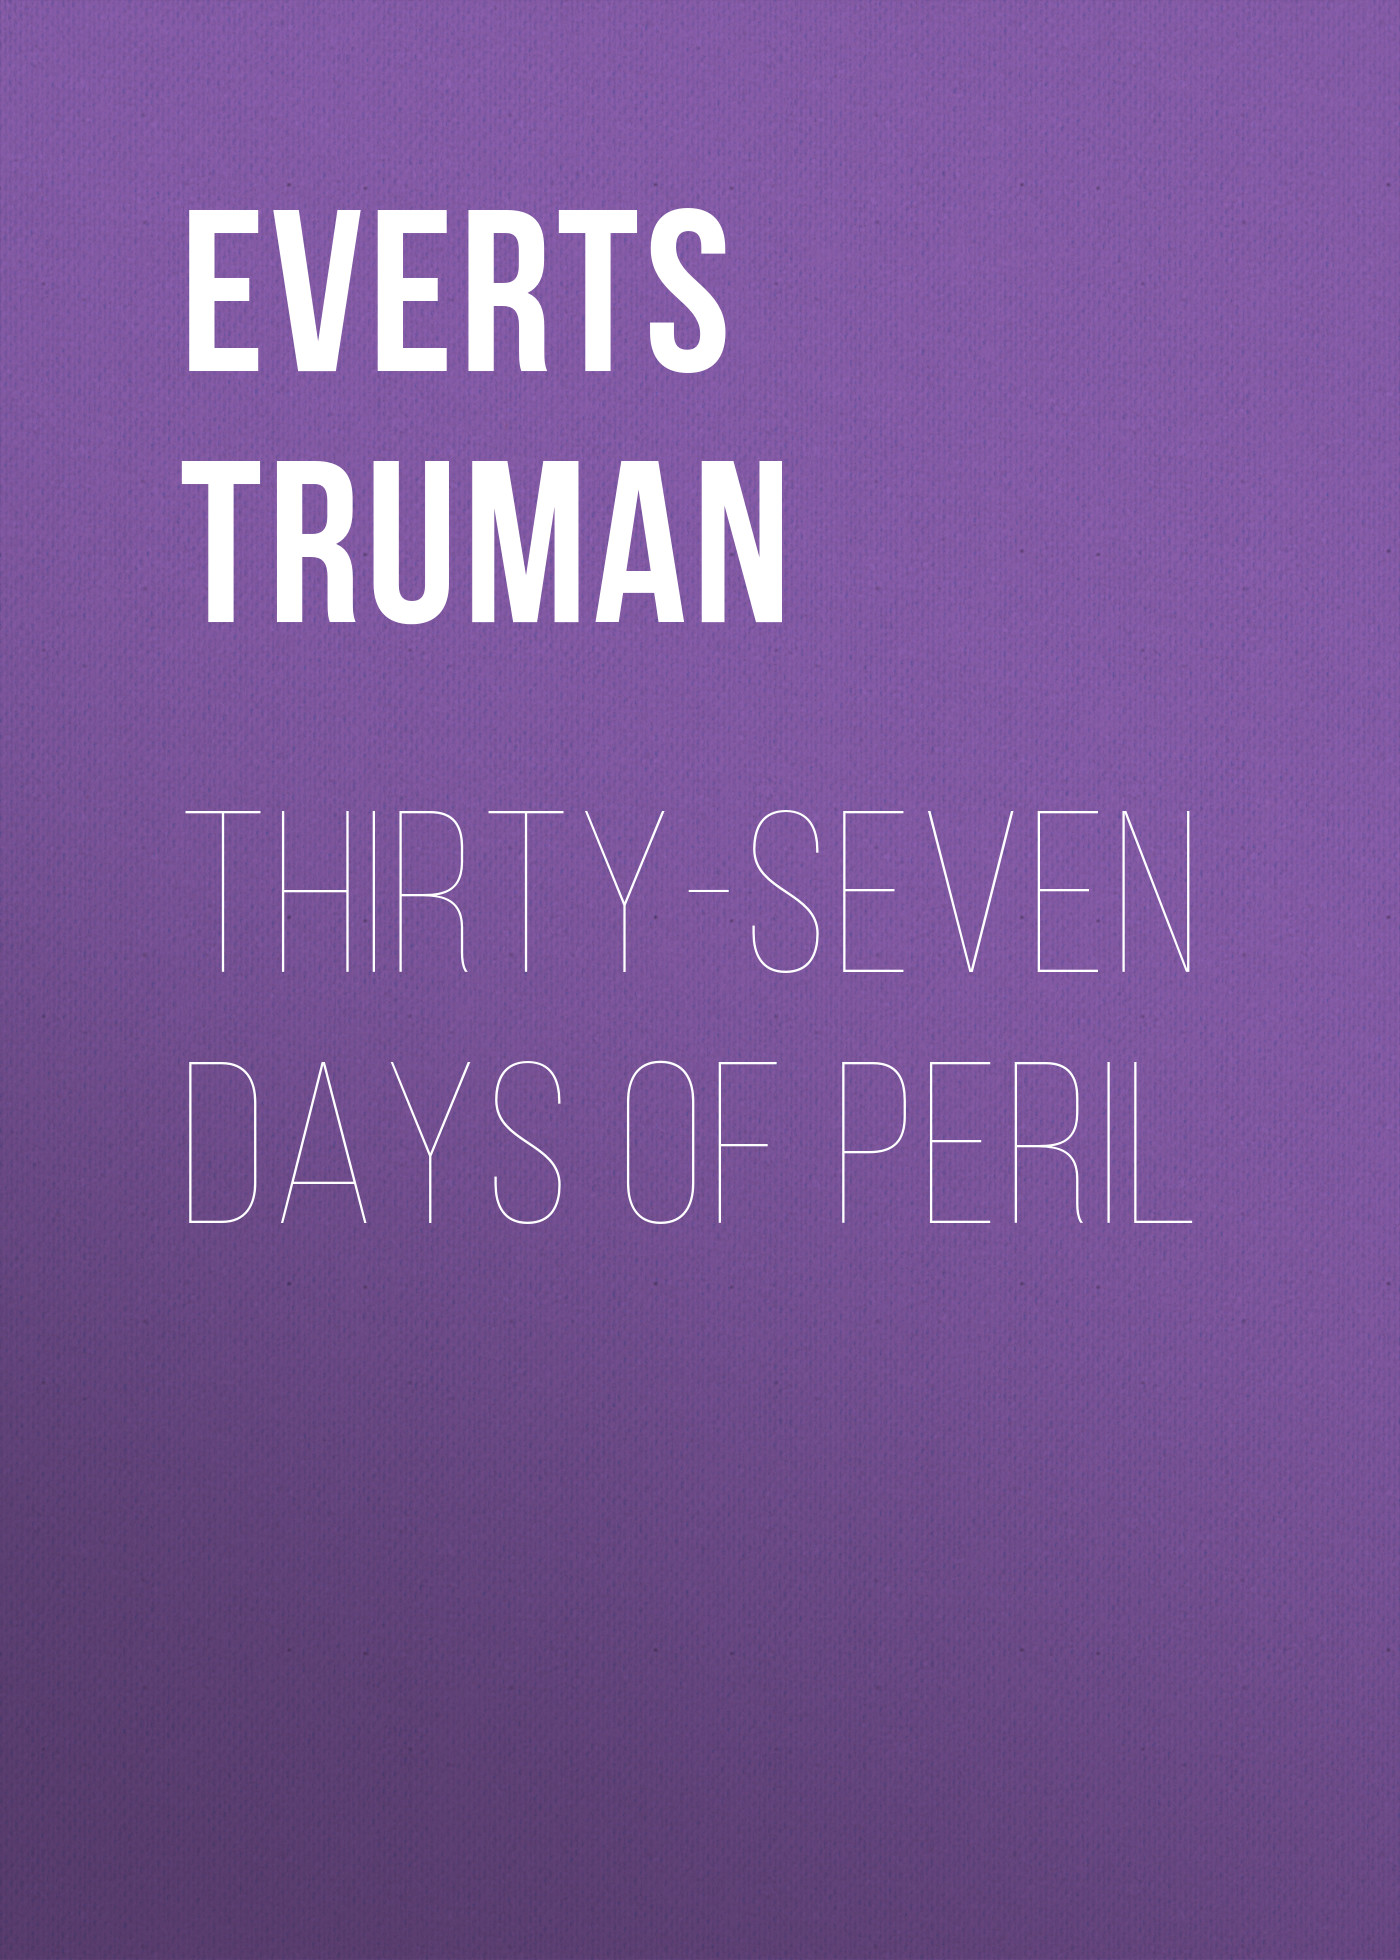 Everts Truman Thirty-Seven Days of Peril p is for peril